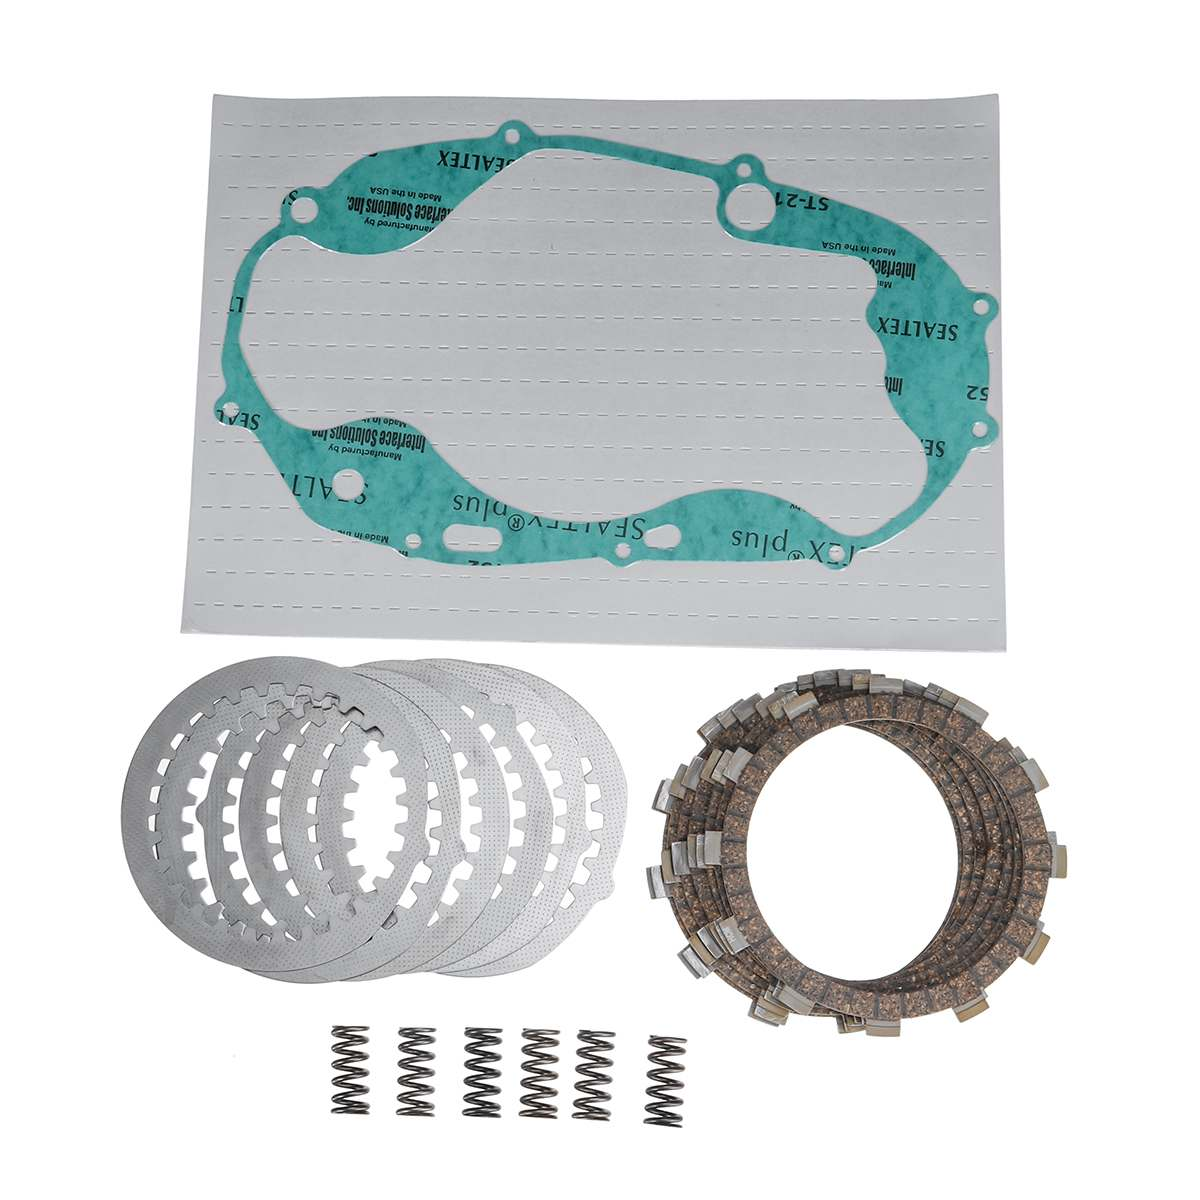 NEW 1Set Motorcycle Clutch Repair Kit Heavy Duty Springs & Cover Gasket FOR Yamaha BANSHEE YFZ350 19872006 image